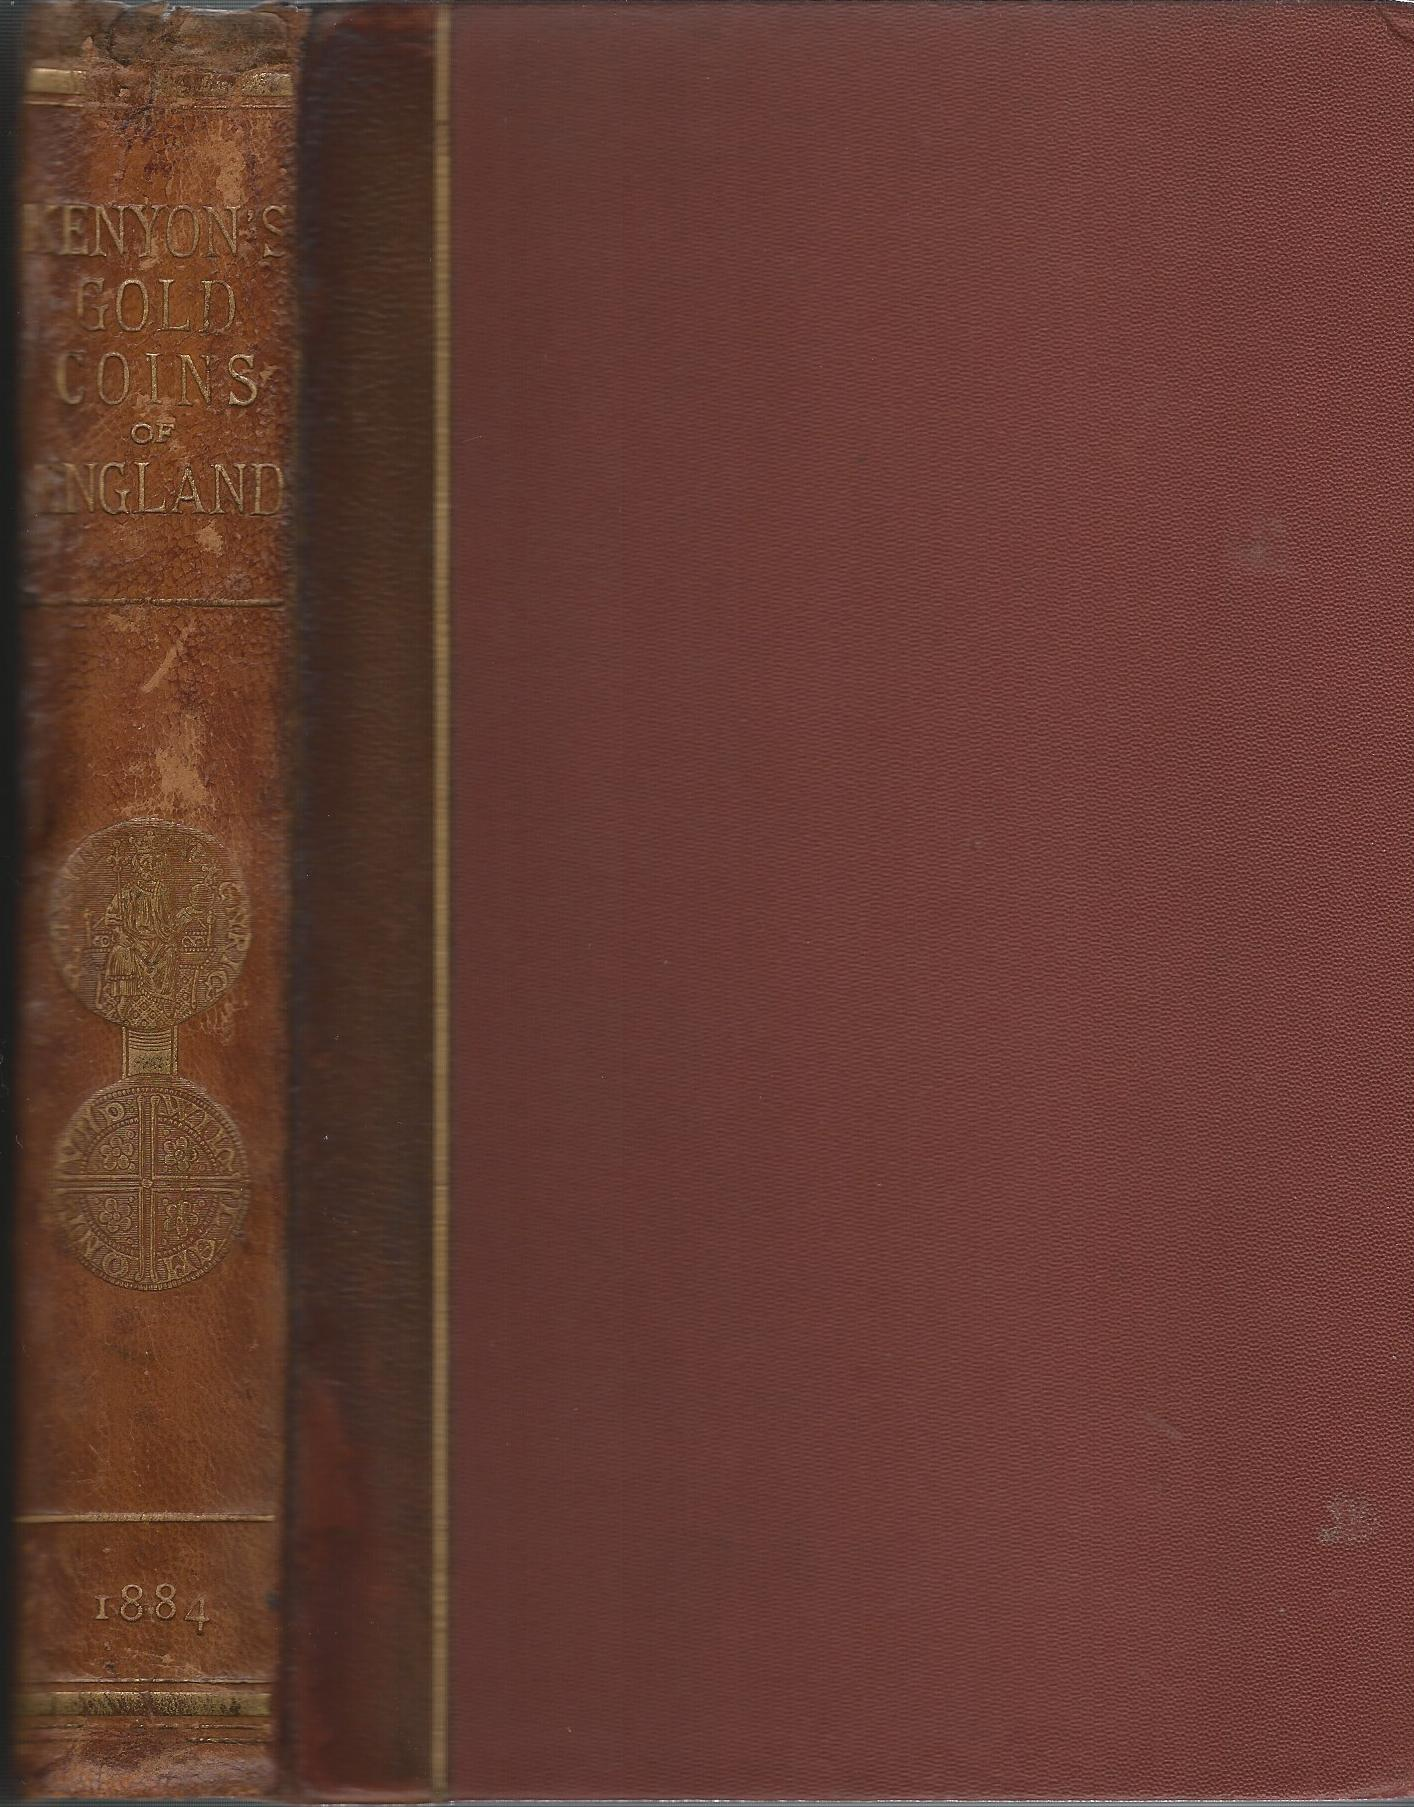 Image for The Gold Coins of England, Arranged and Described: Being a Sequel to Mr. Hawkins' Silver Coins of England.